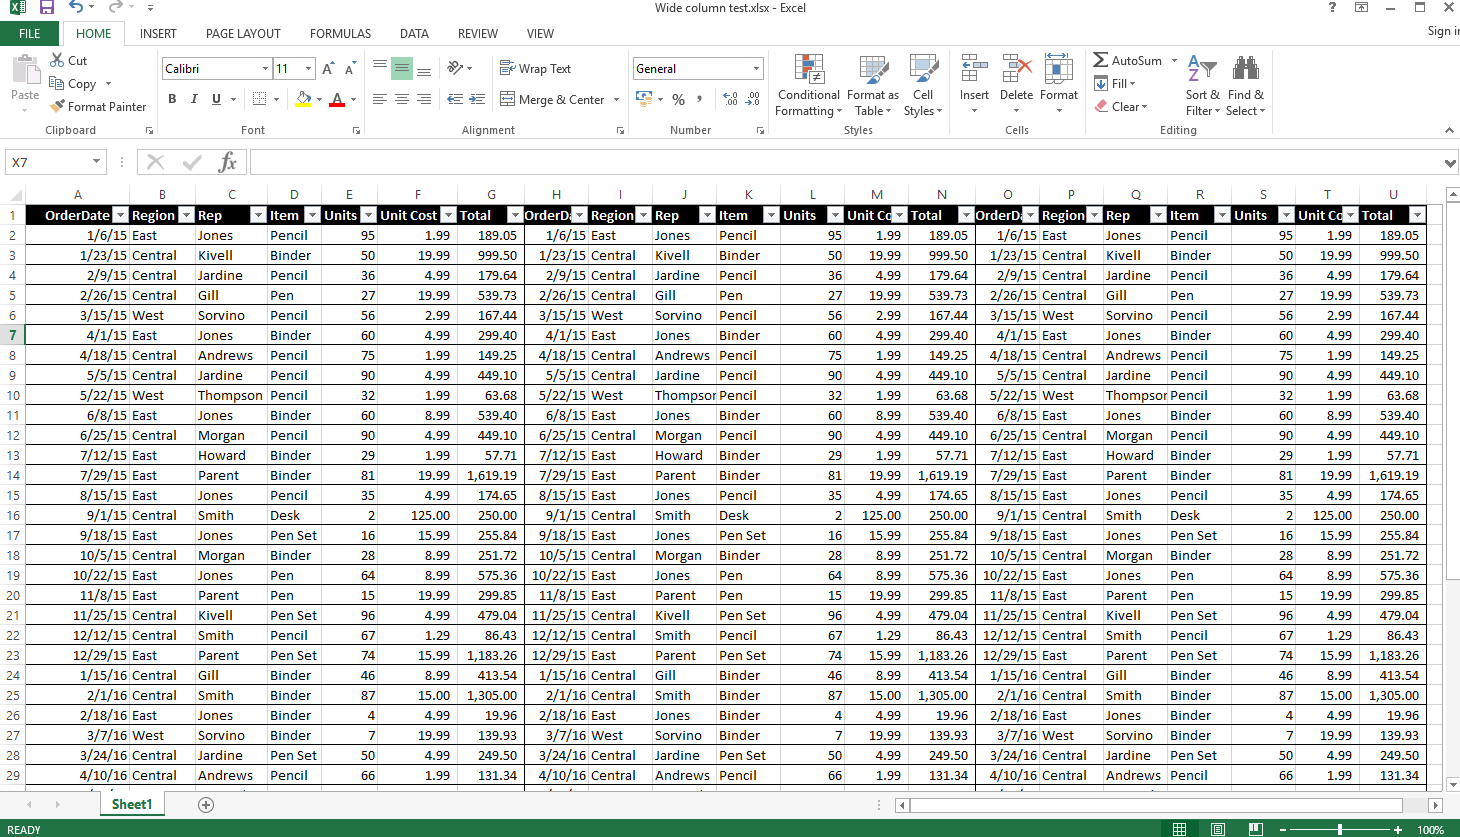 How Do I Ensure Excel File With Wide Columns Does Not Get